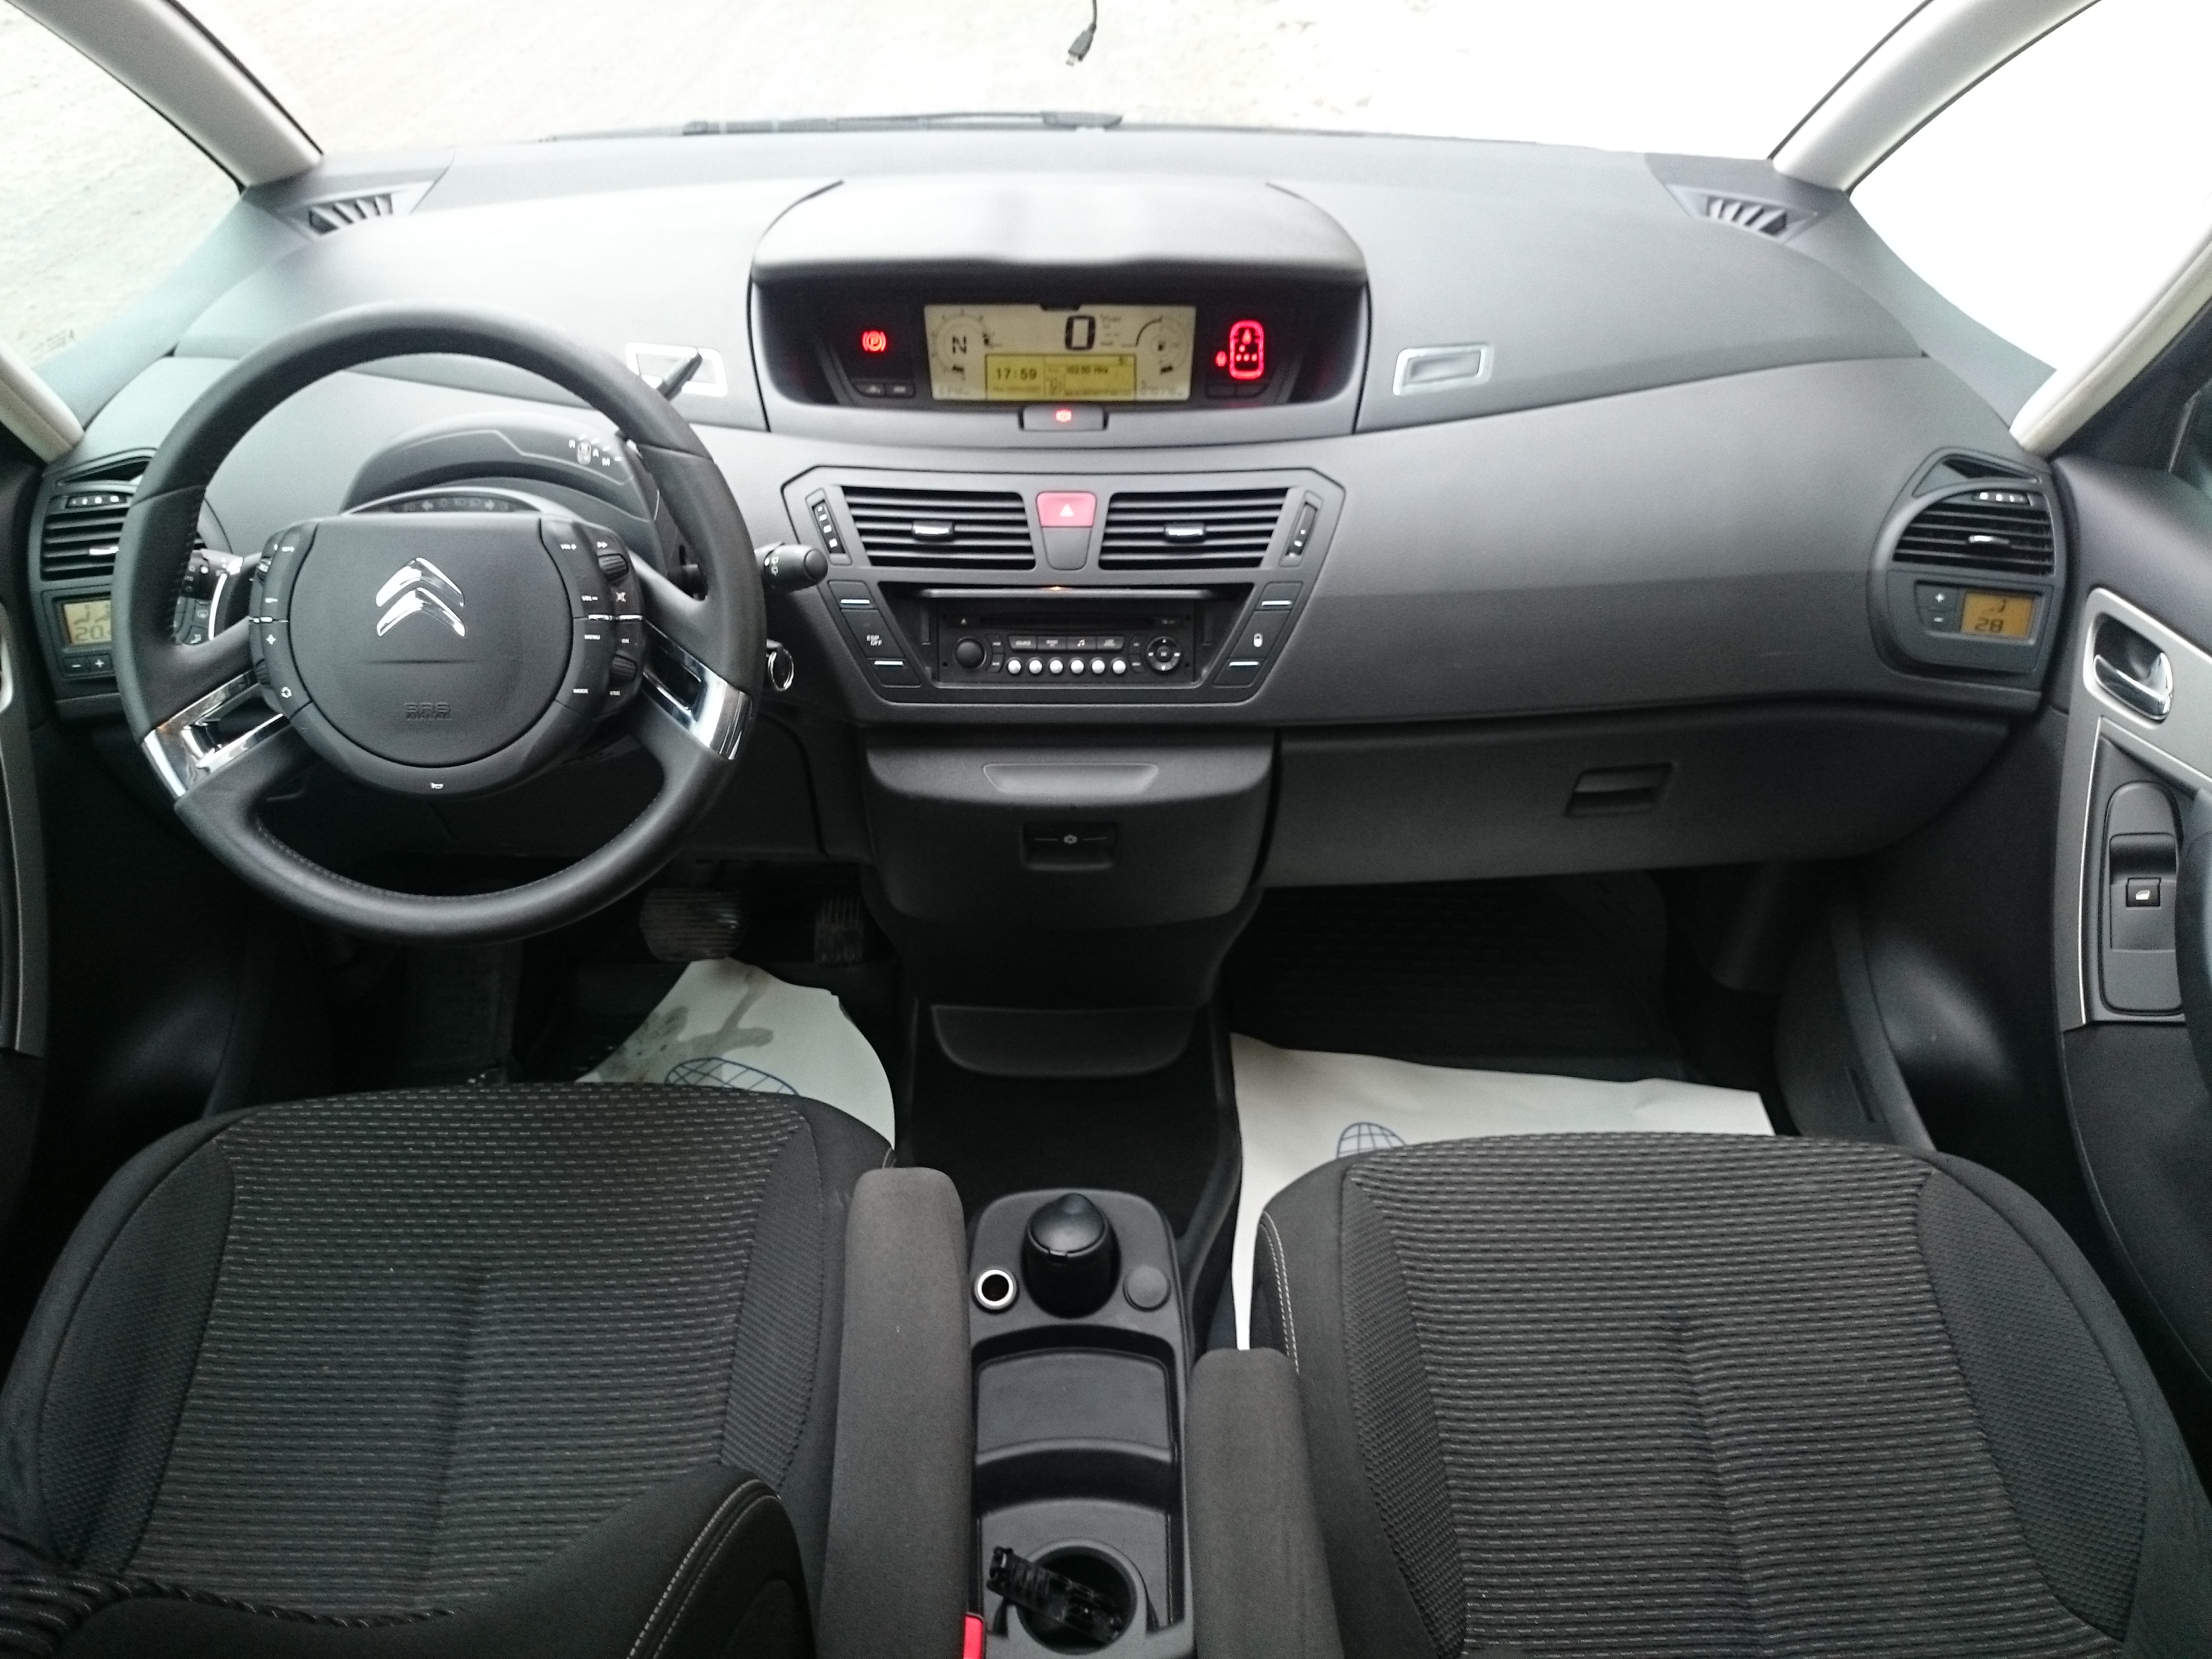 Citroen C4 Picasso I Grand 1.6 AT -009